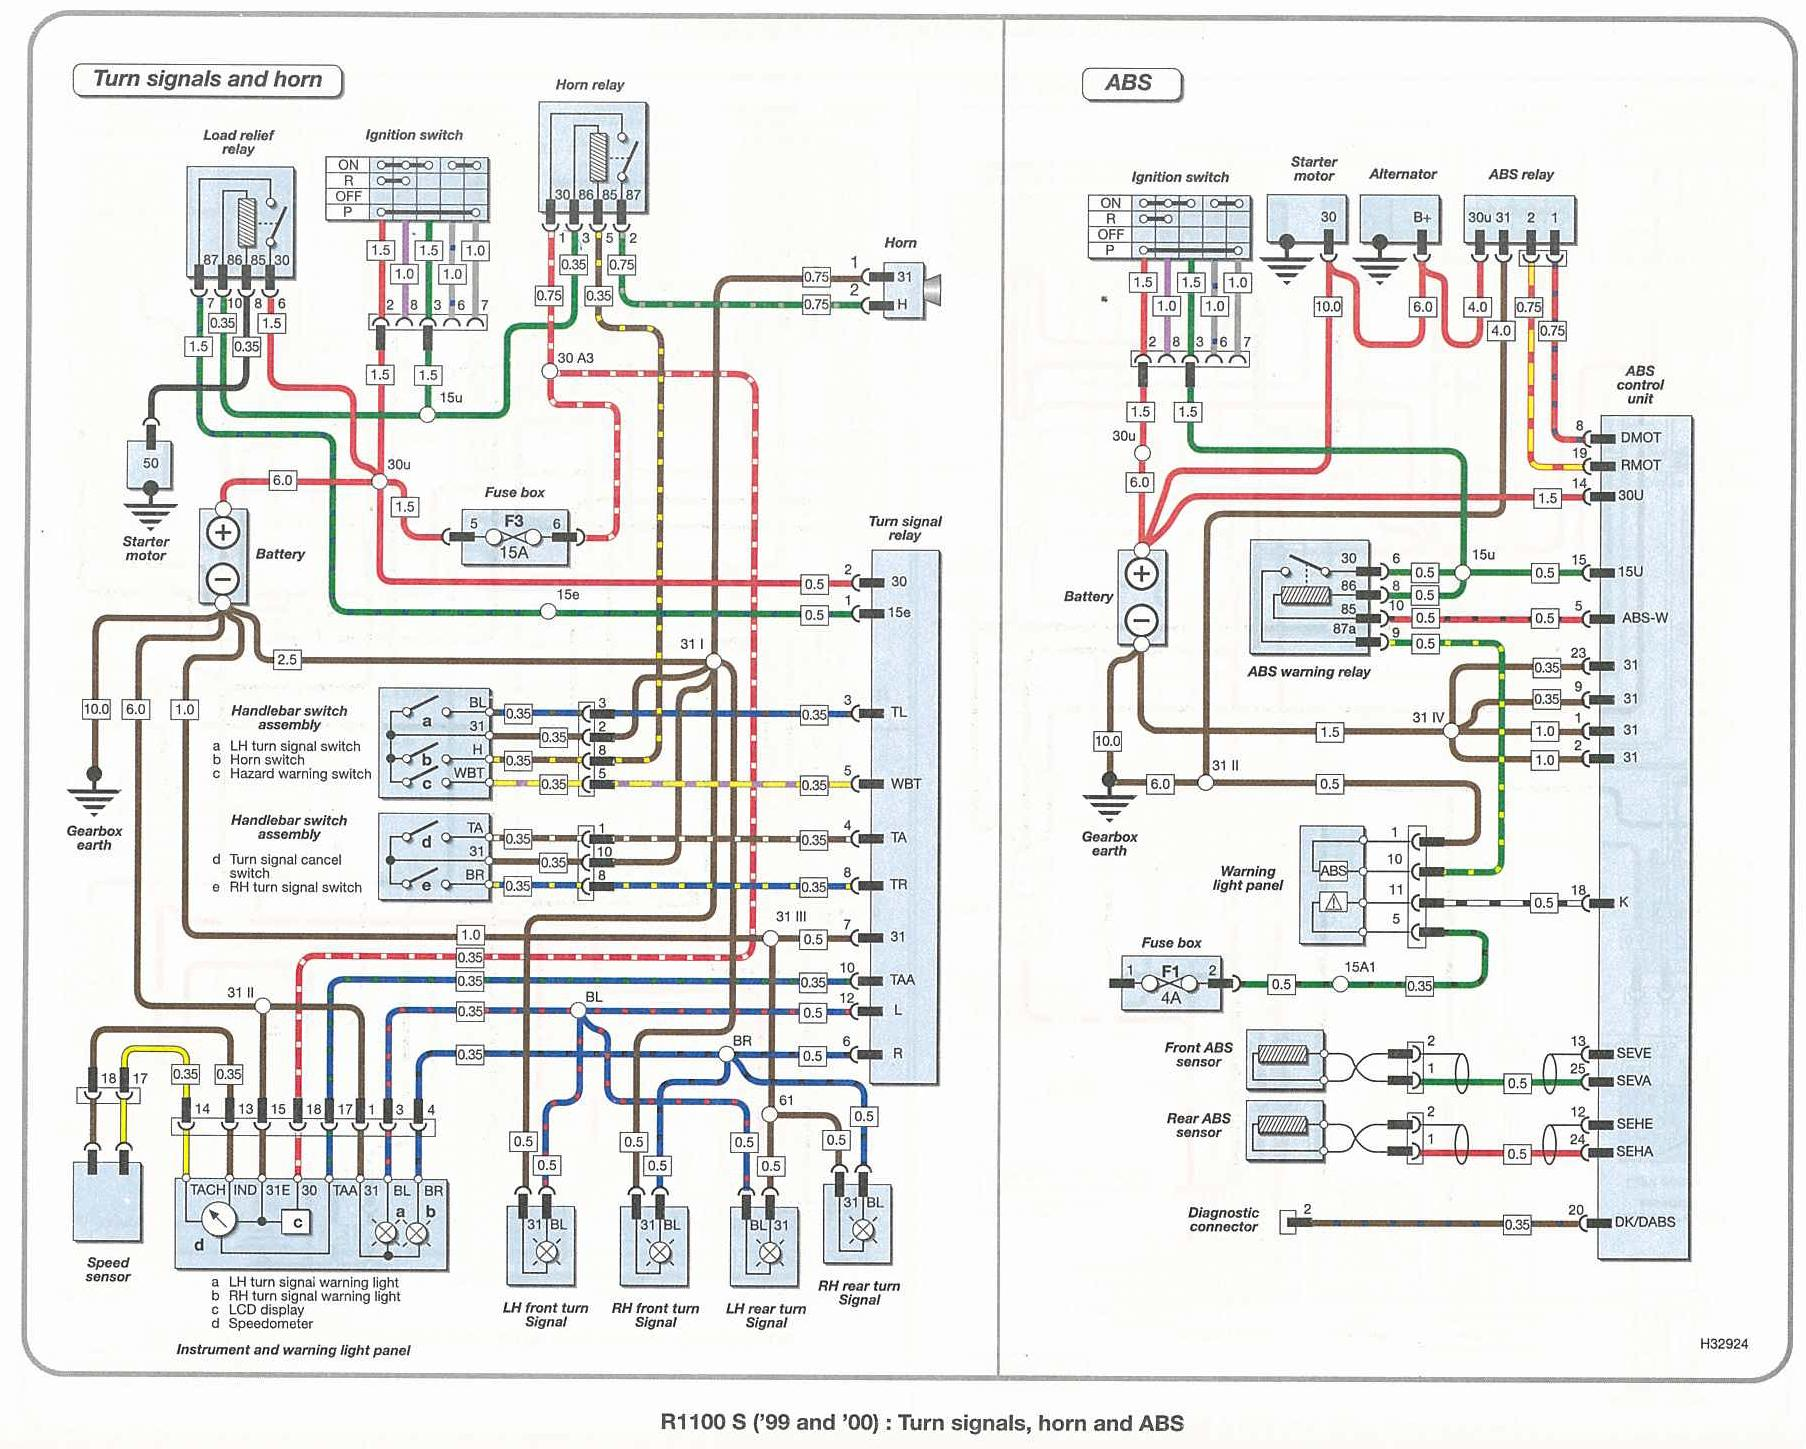 wiring03 bmw wiring diagram bmw wiring diagrams e39 \u2022 wiring diagrams j E46 Wiring Diagram PDF at love-stories.co